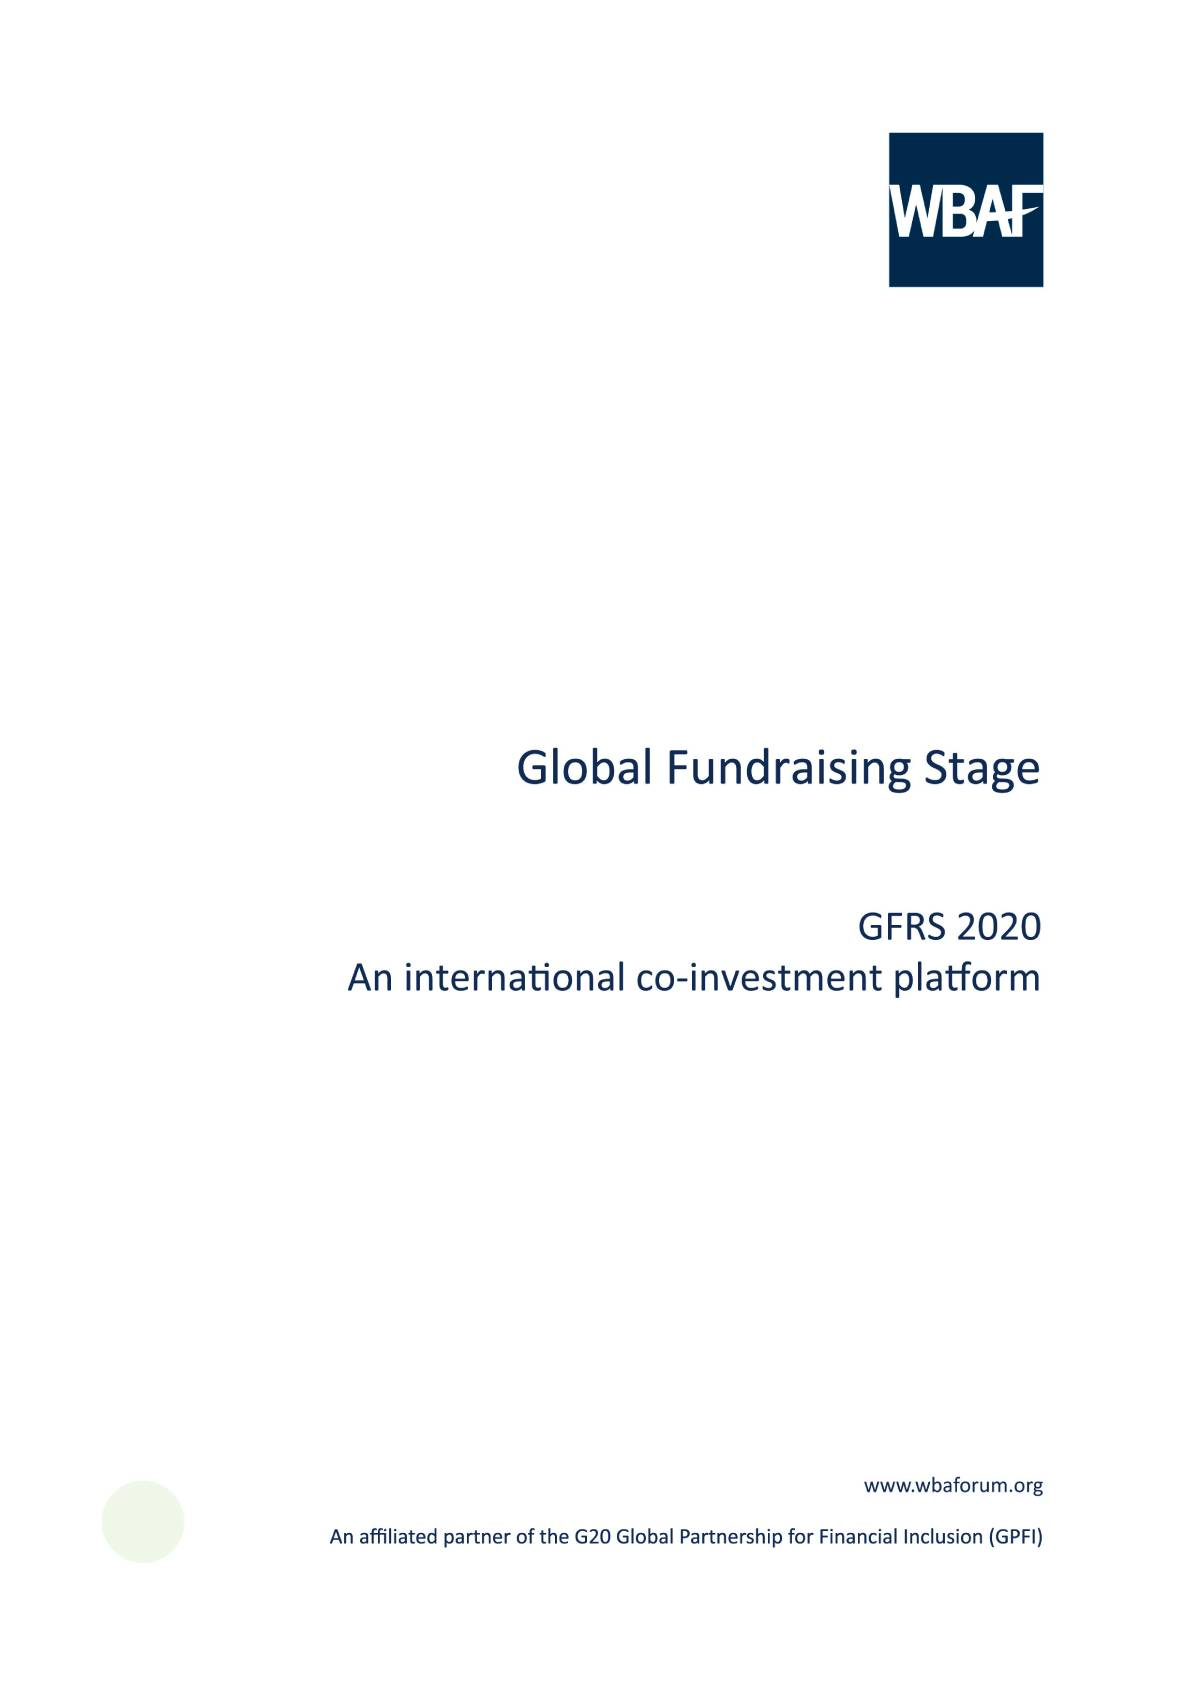 Global Fundraising Stage - GFRS 2020